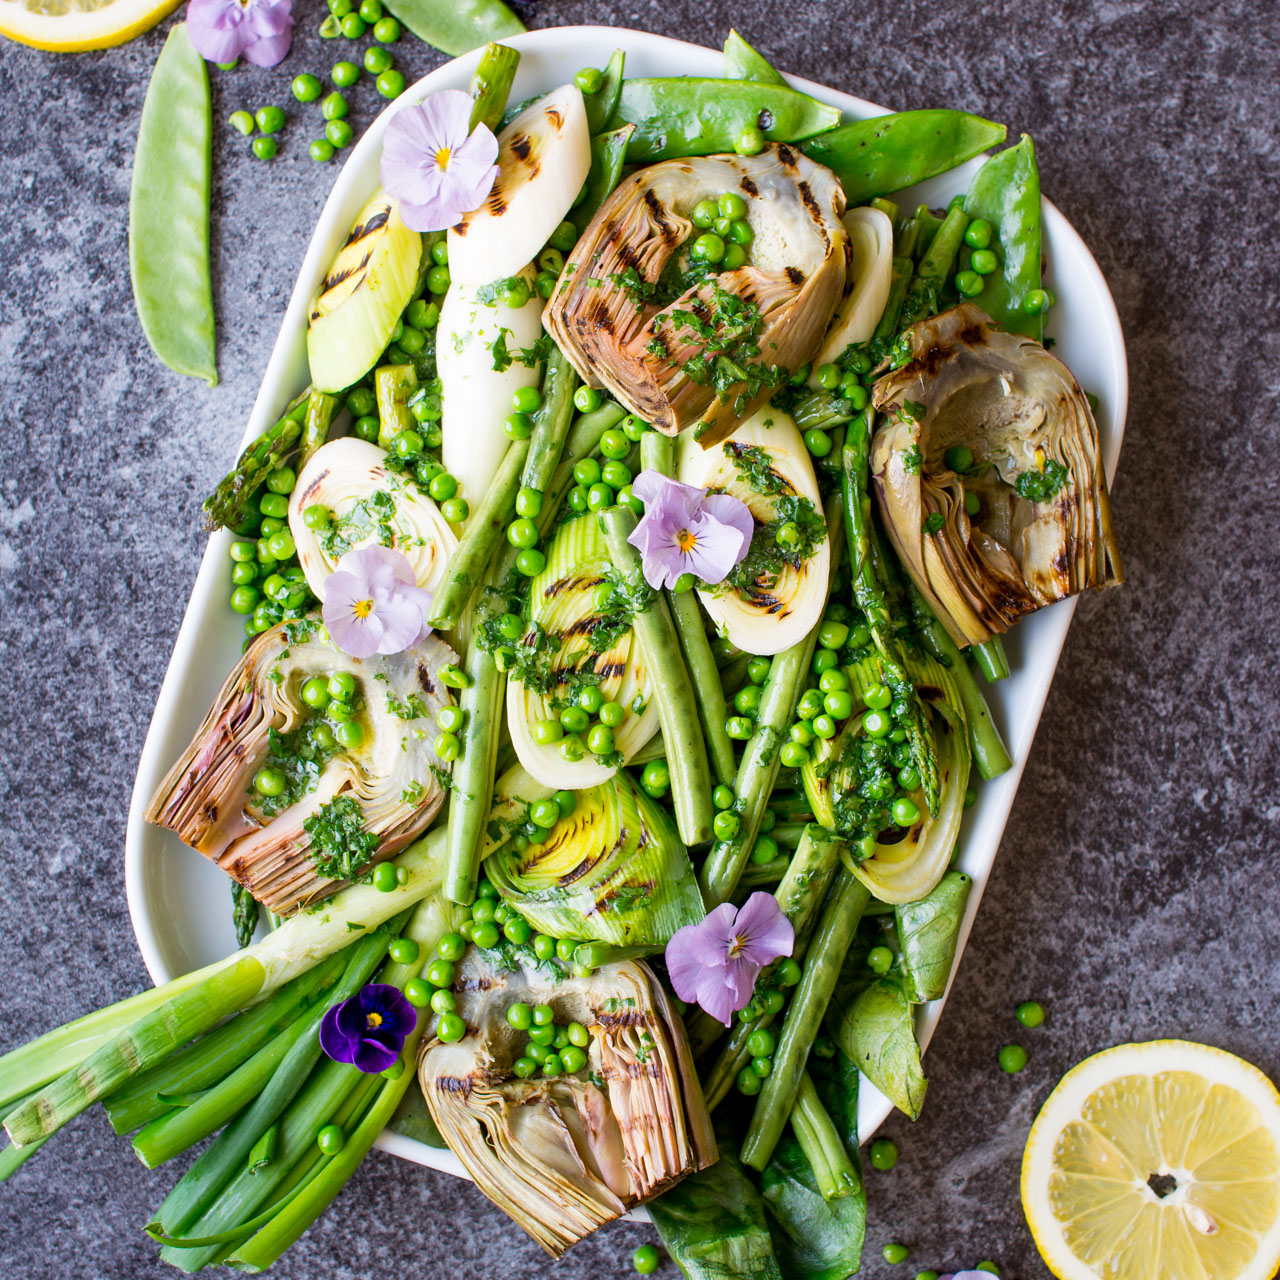 5 Simple Spring Meals On The Grill: Grilled Spring Greens With Homemade Lemon Parsley Butter